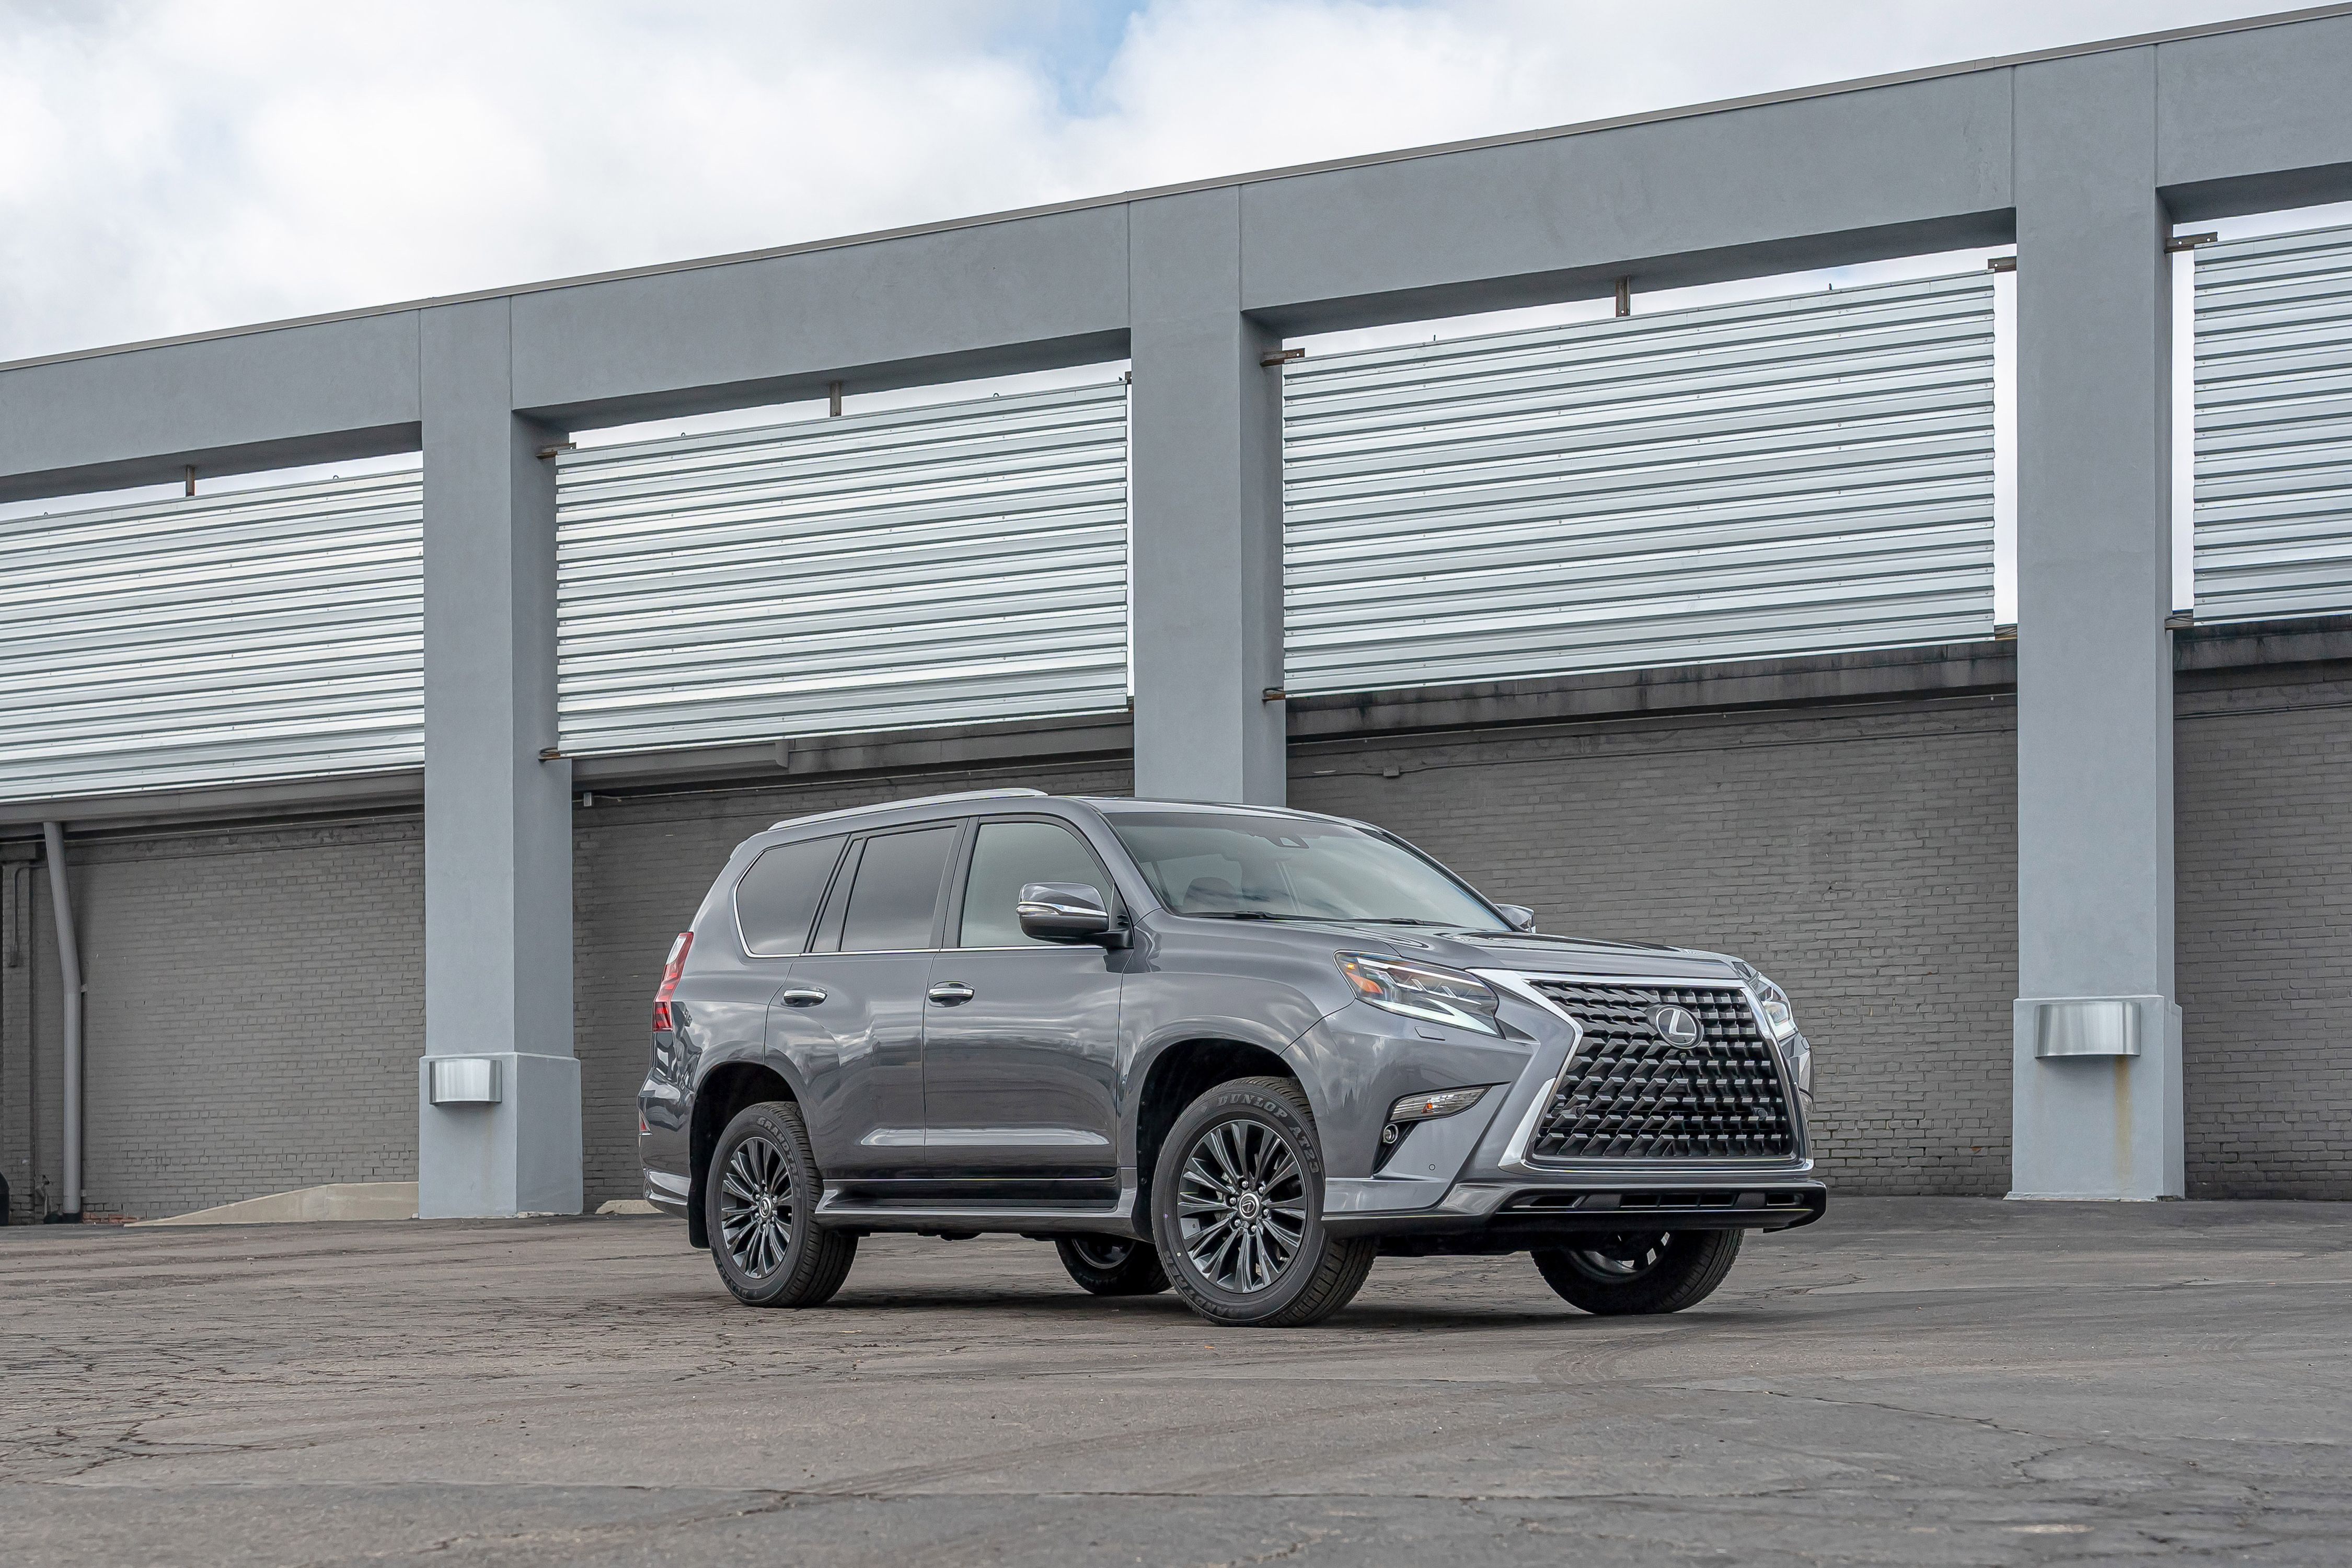 Tested 2020 Lexus Gx460 Is A Grille Hiding An Old Suv